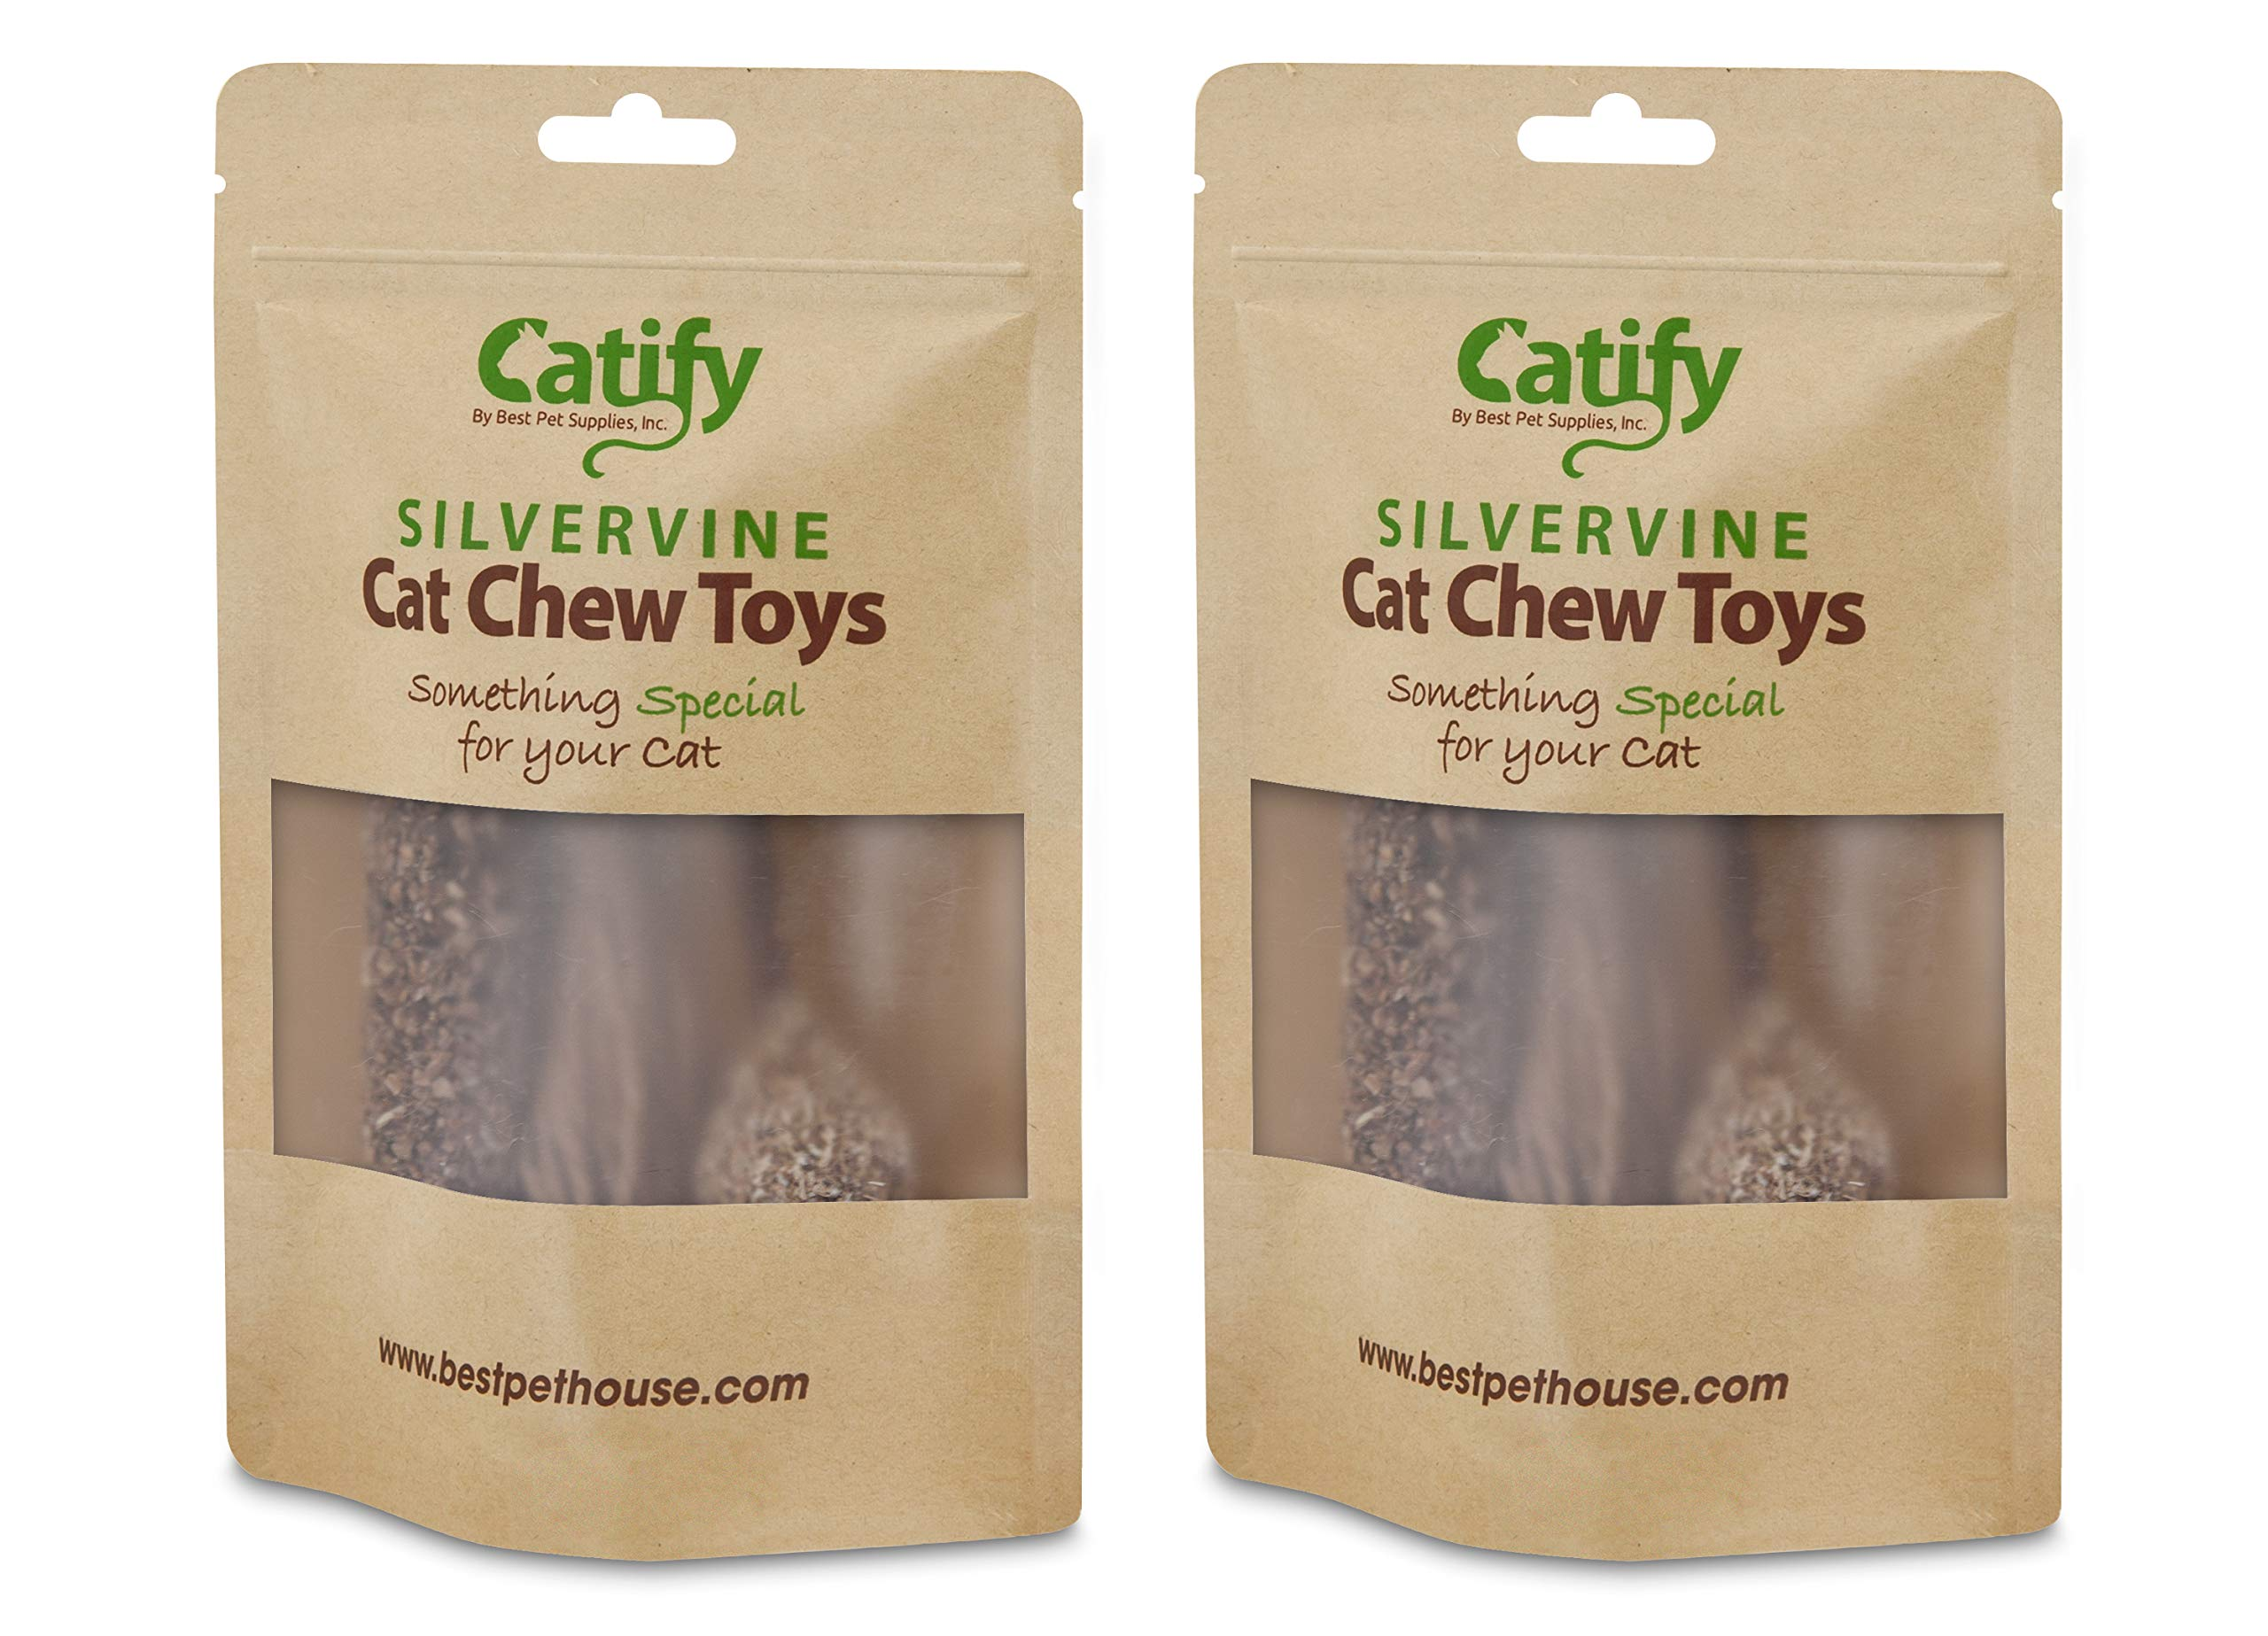 Natural Silvervine Cat Chew Toy | Interactive Silver Vine Chewing Toys with Catnip Like Effect